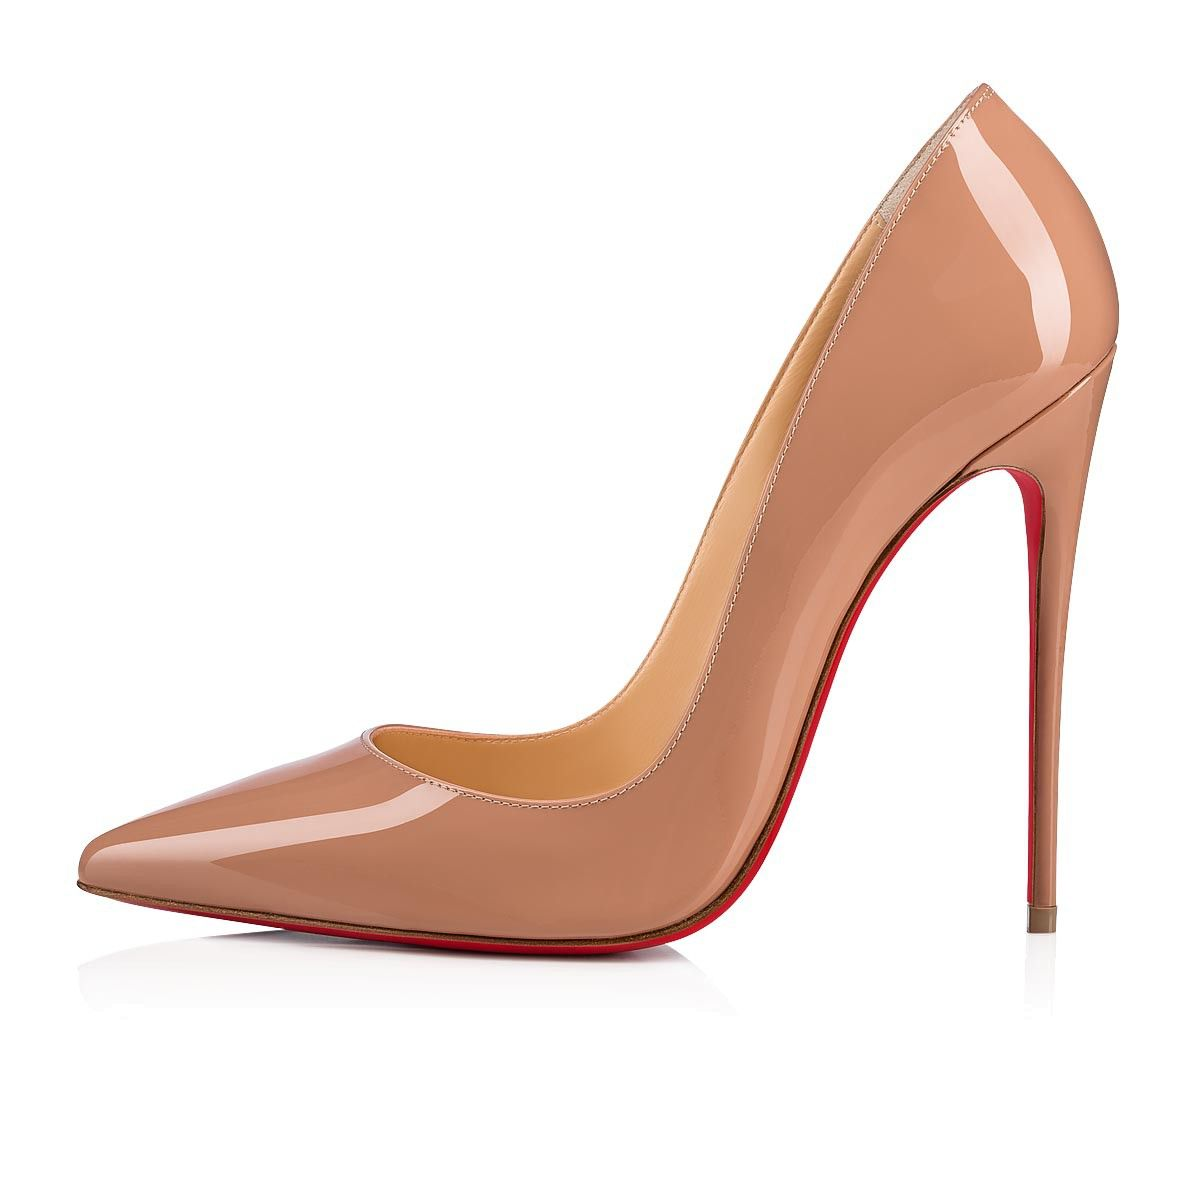 chaussure louboutin femme so kate